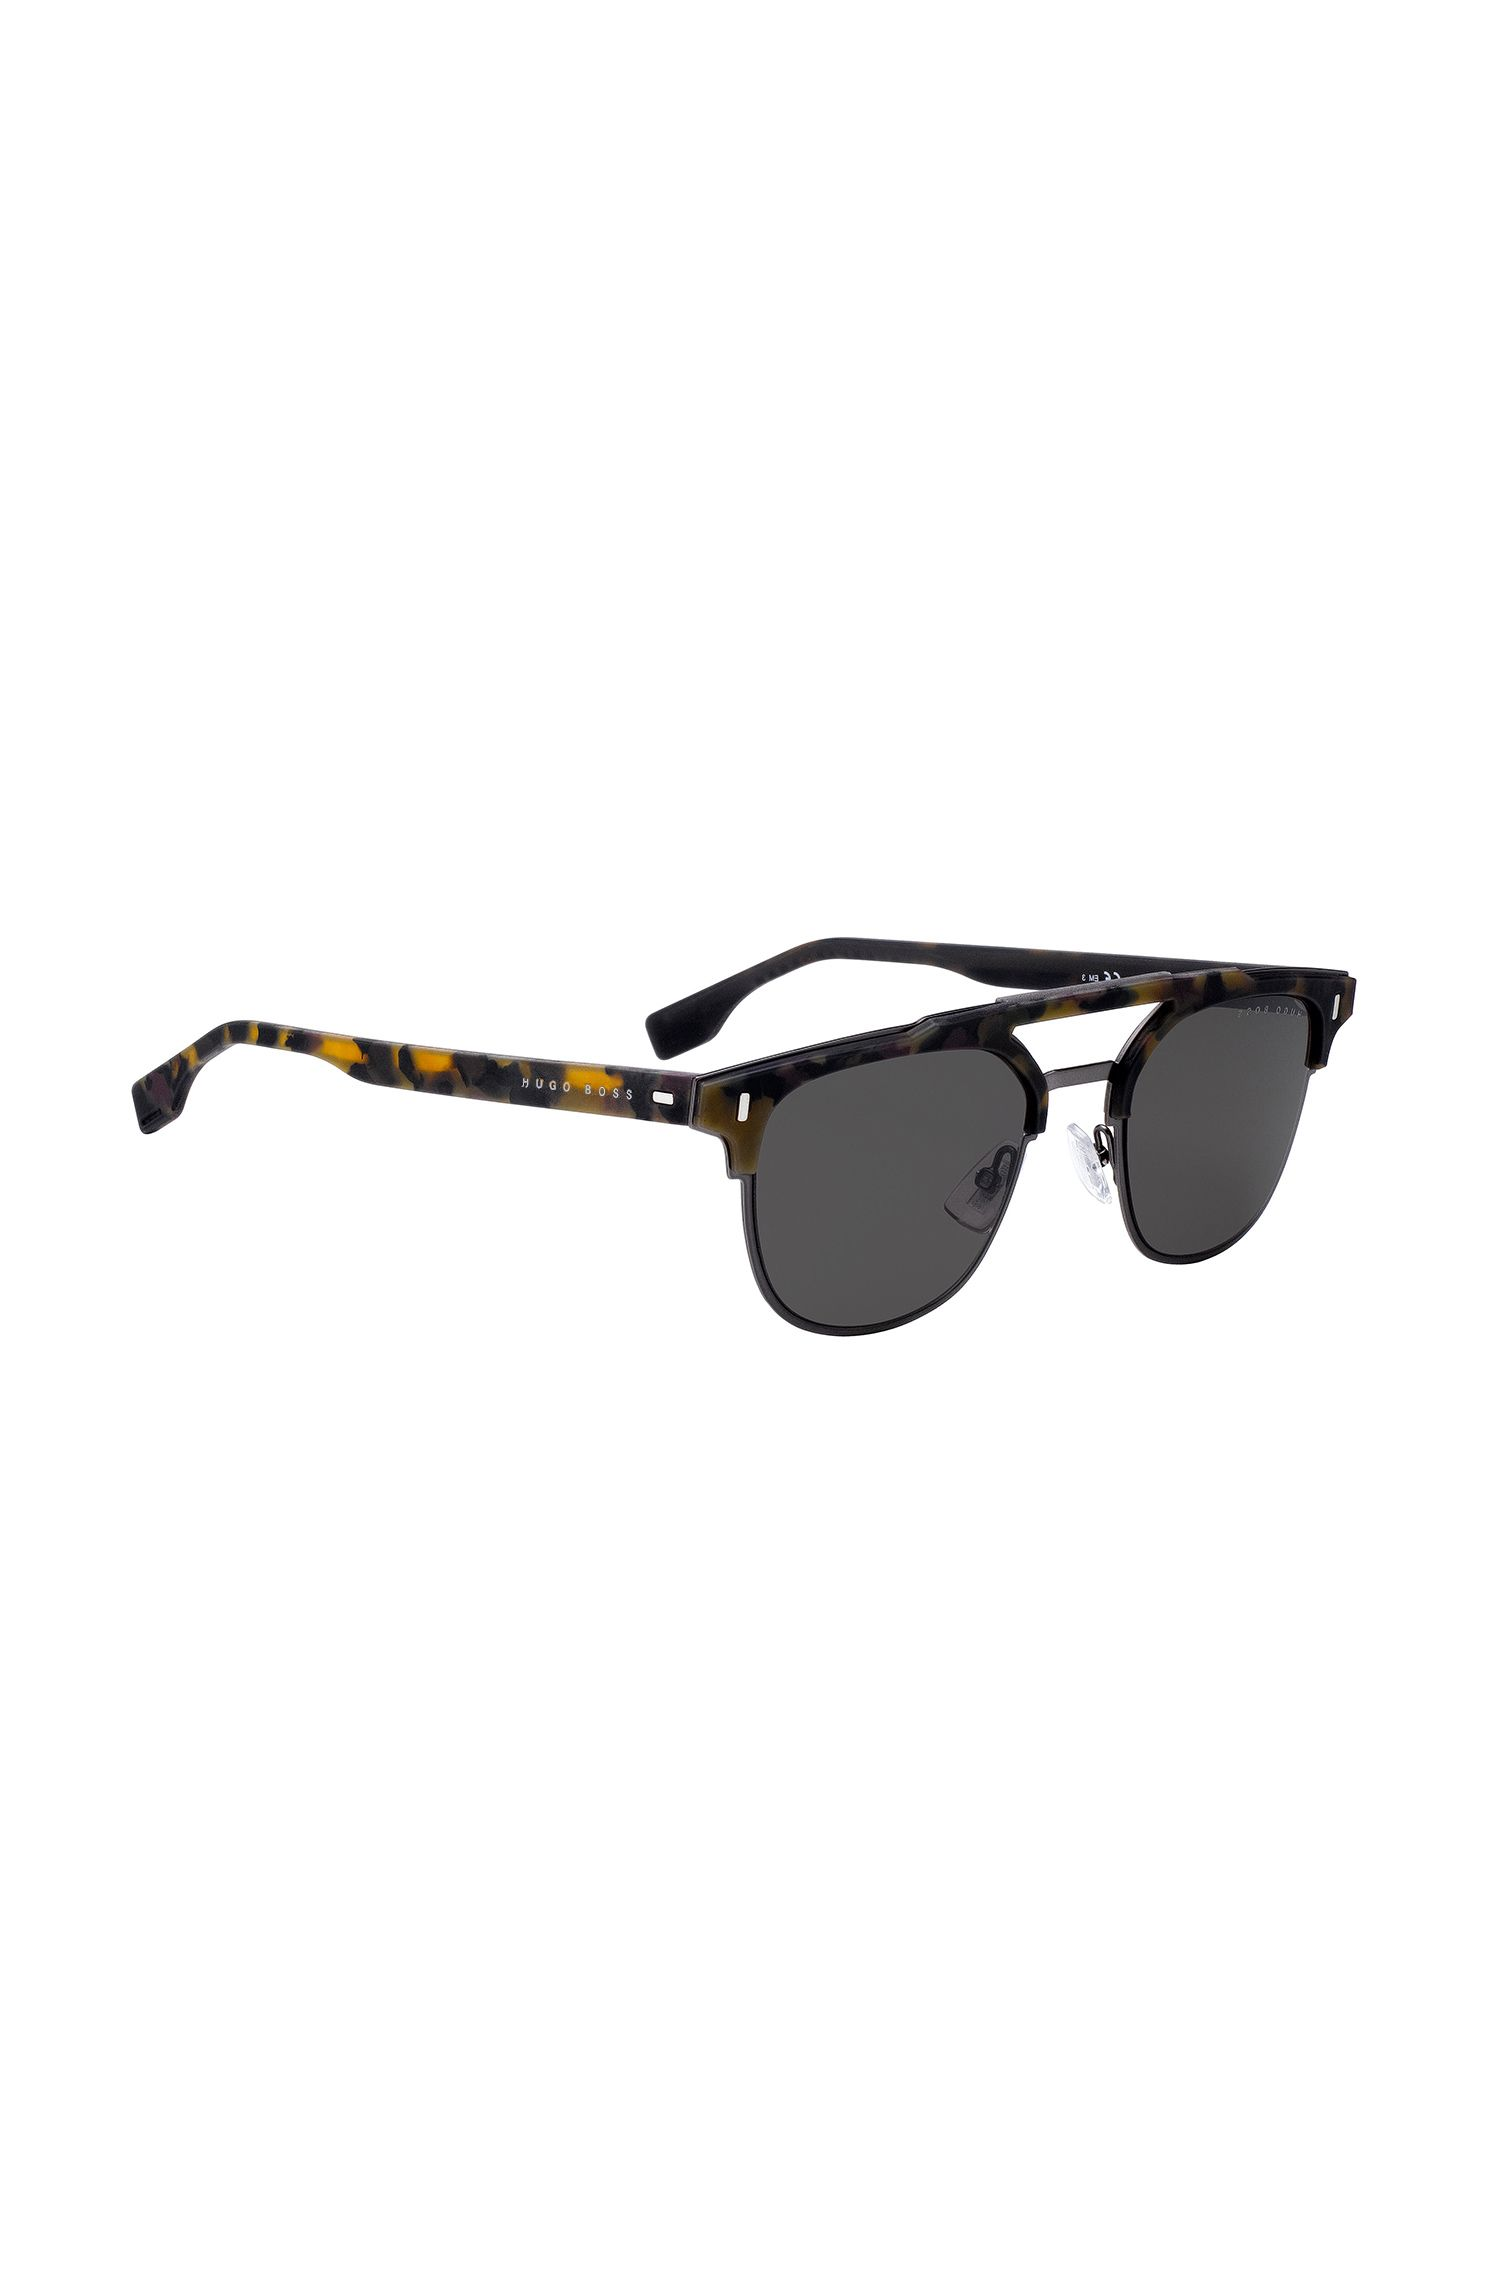 Rubberised-Havana sunglasses with riveted hinges